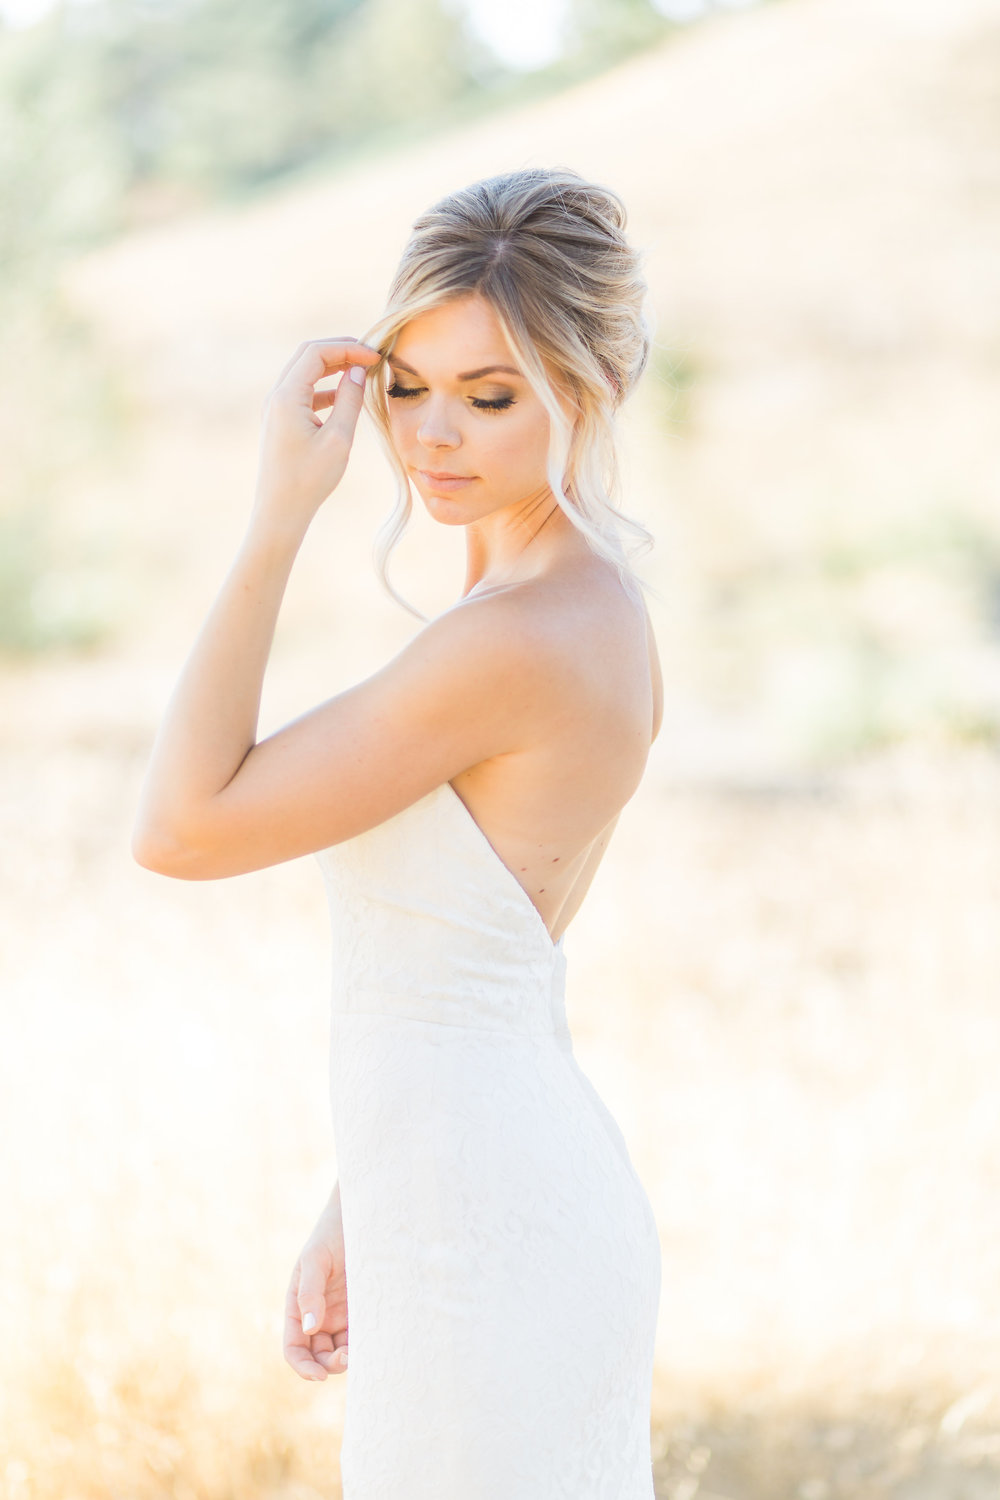 Boho bridal beauty